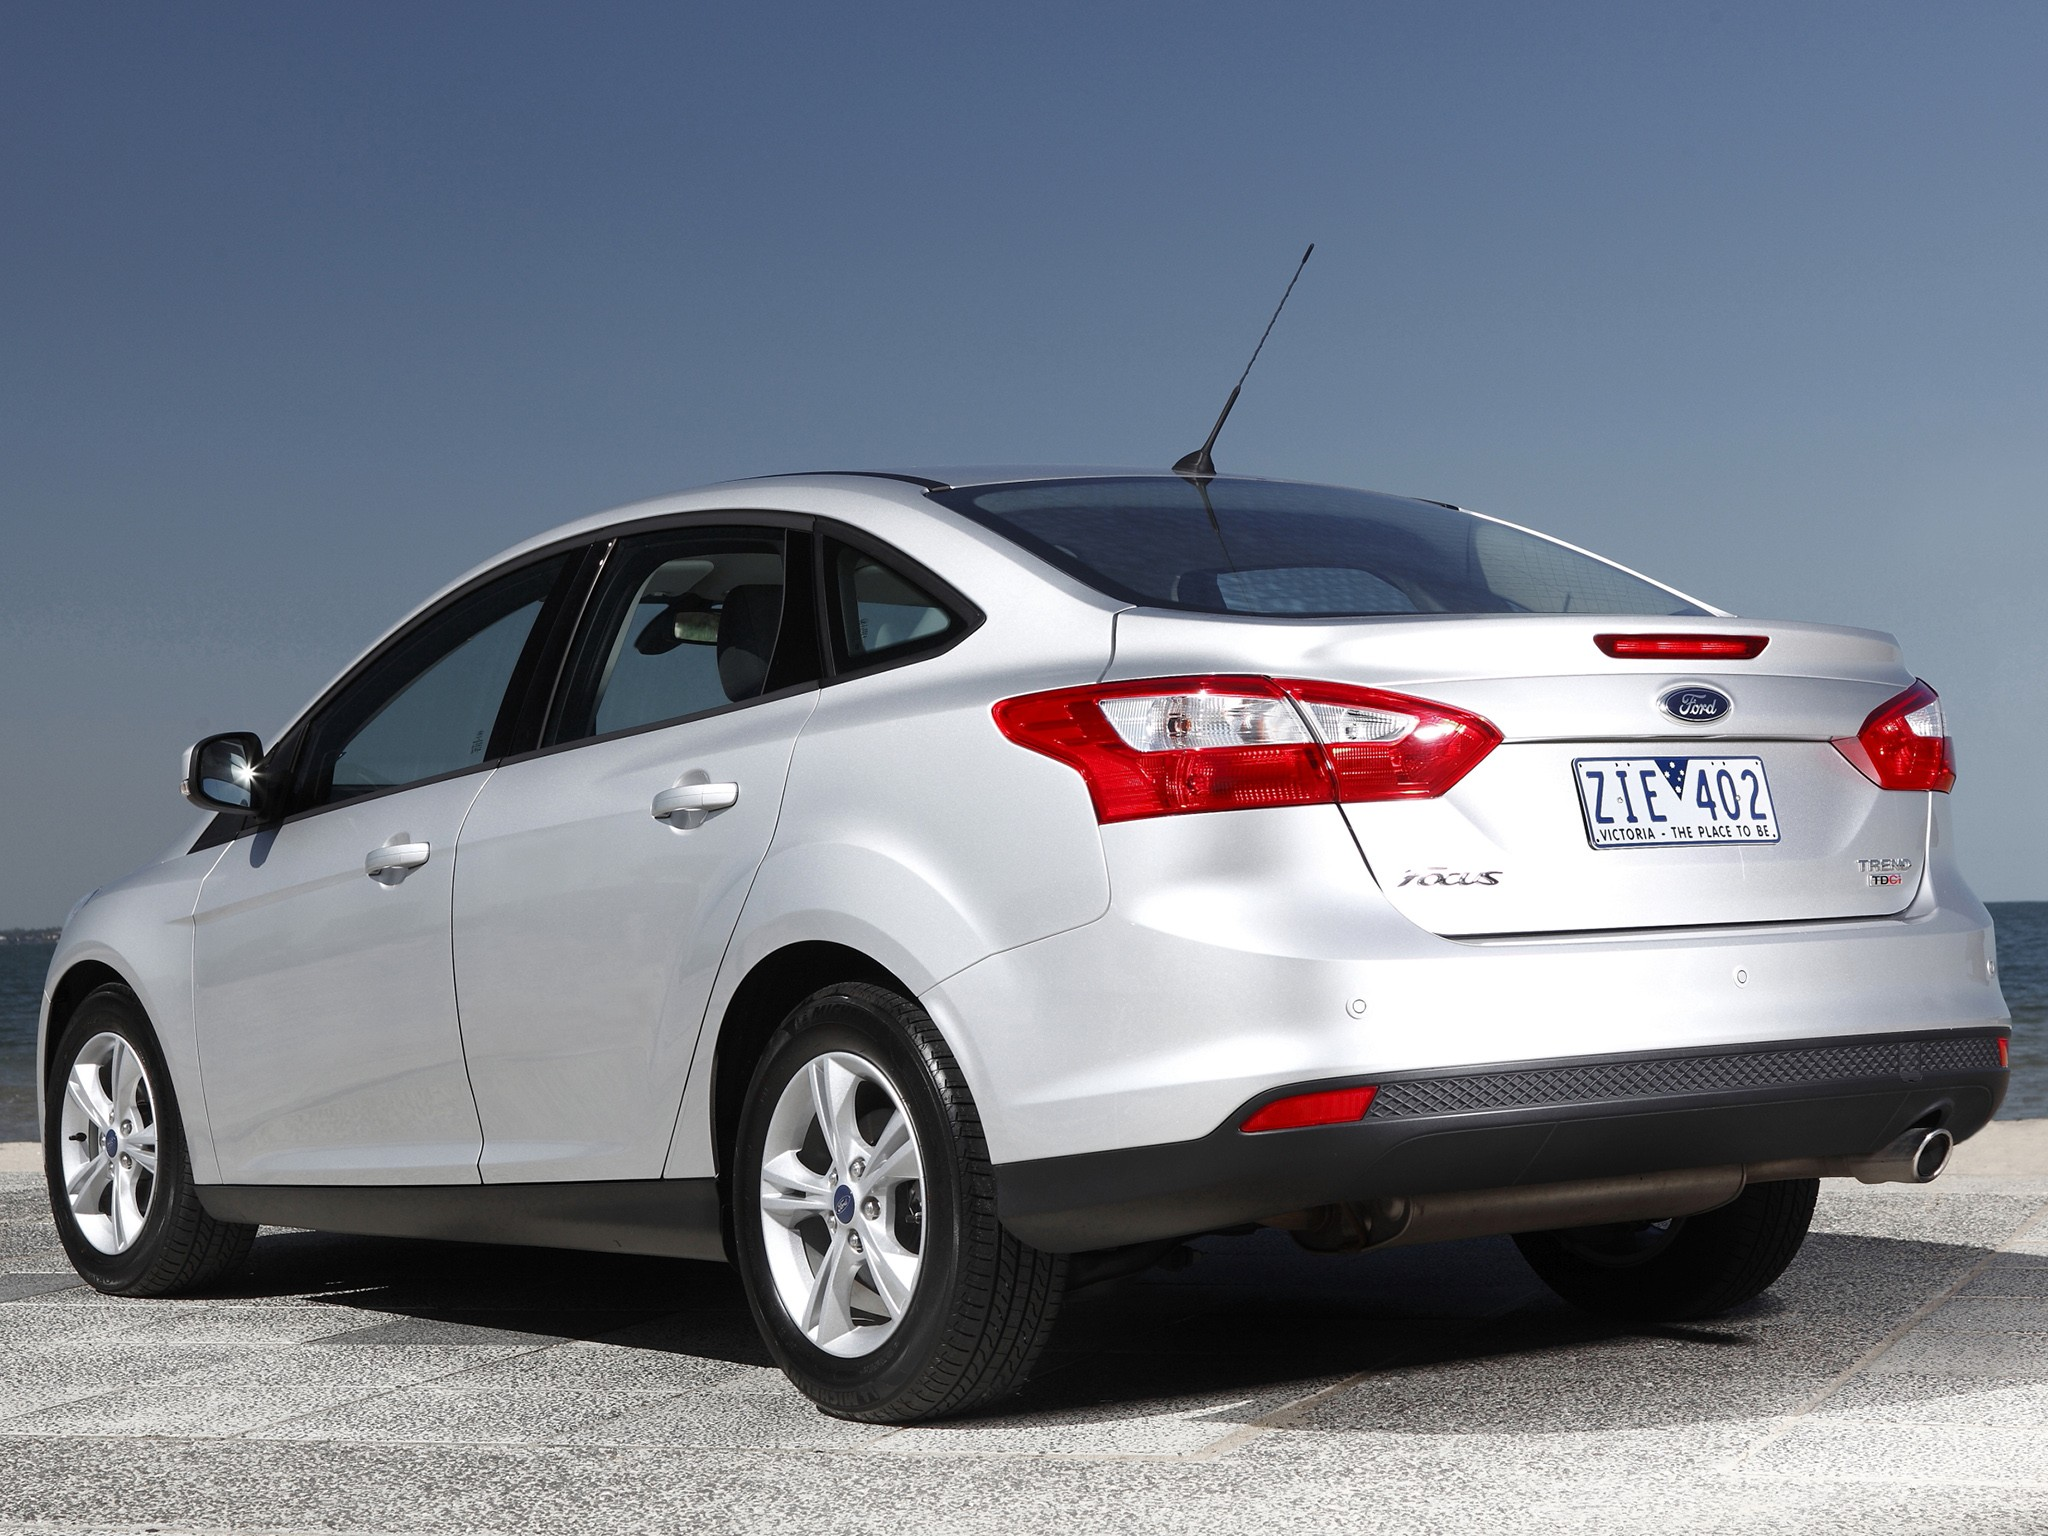 Ford Focus 2013 Sedan >> FORD Focus 4 Doors - 2011, 2012, 2013, 2014 - autoevolution